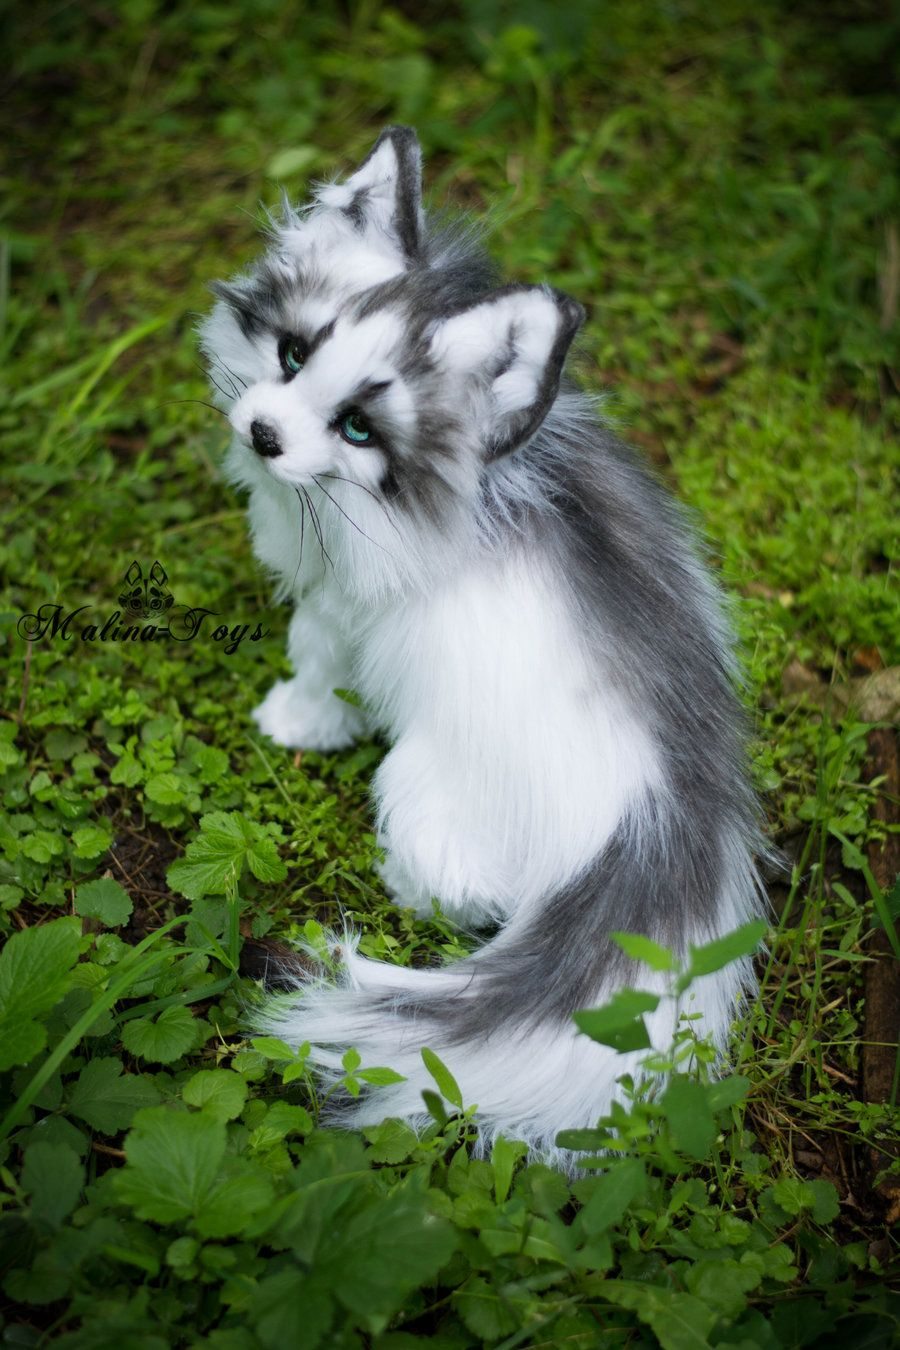 Cute Tiger Cubs Hd Wallpapers Marble Fox Cute Animals Pinterest Marbles Foxes And